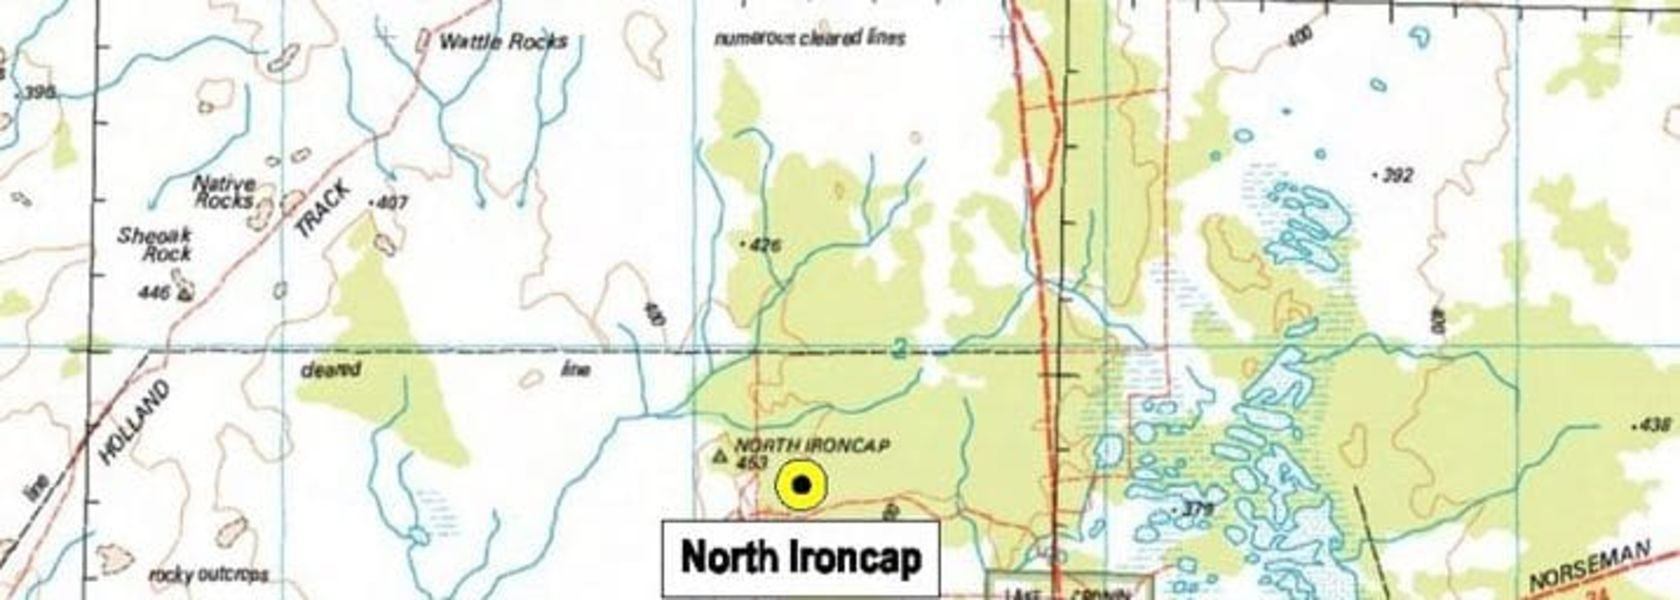 North Ironcap works to speed things up